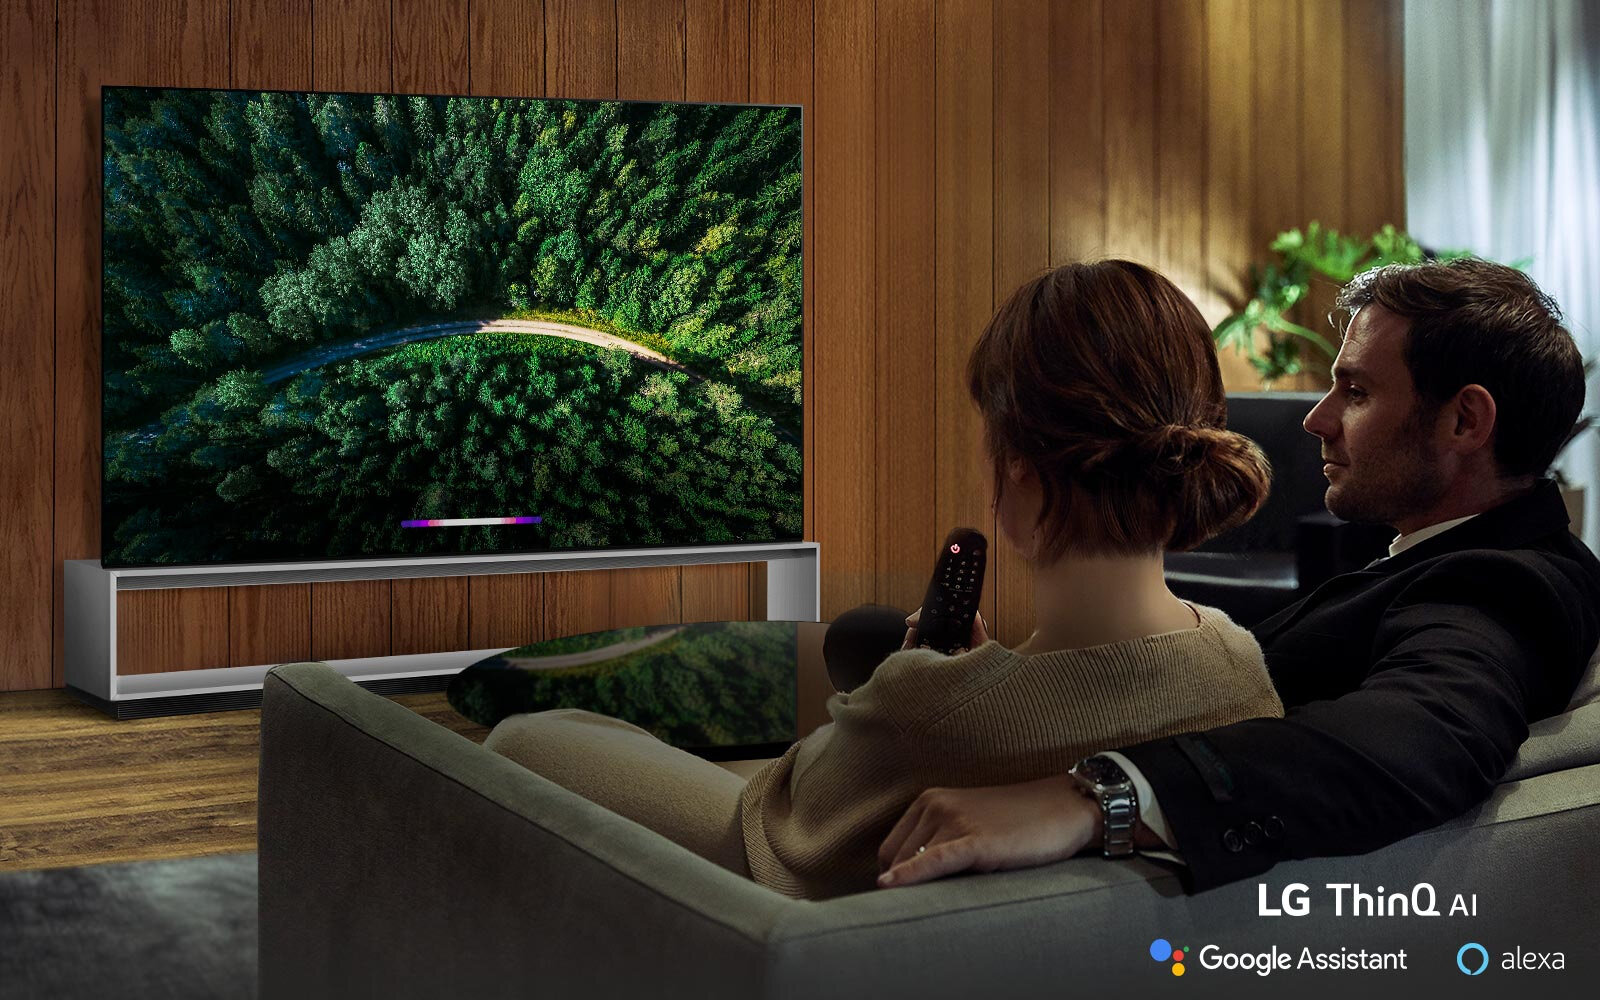 AI SmartLive in wonder with New Intelligence - LG AI TV expands your AI experience with both the Google Assistant and Alexa*. Get answers to questions and control smart home appliances all through the power of your voice.